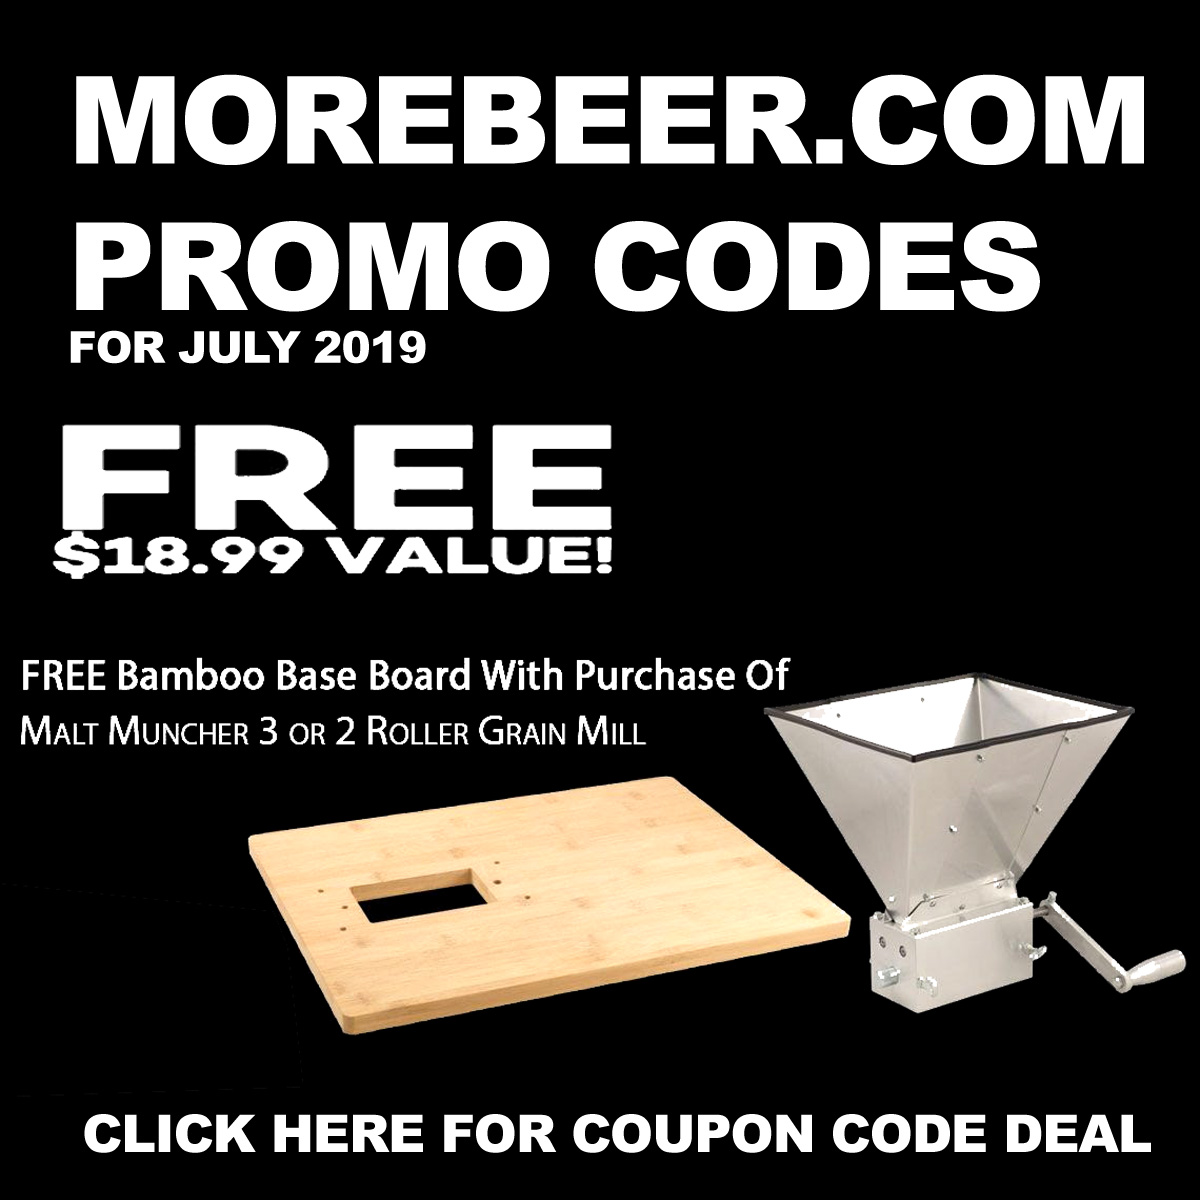 MoreBeer Use this MoreBeer.com Promo Code to Get A FREE Bamboo Base Board With The Purchase Of Malt Muncher or 2 Roller Grain Mill! Coupon Code